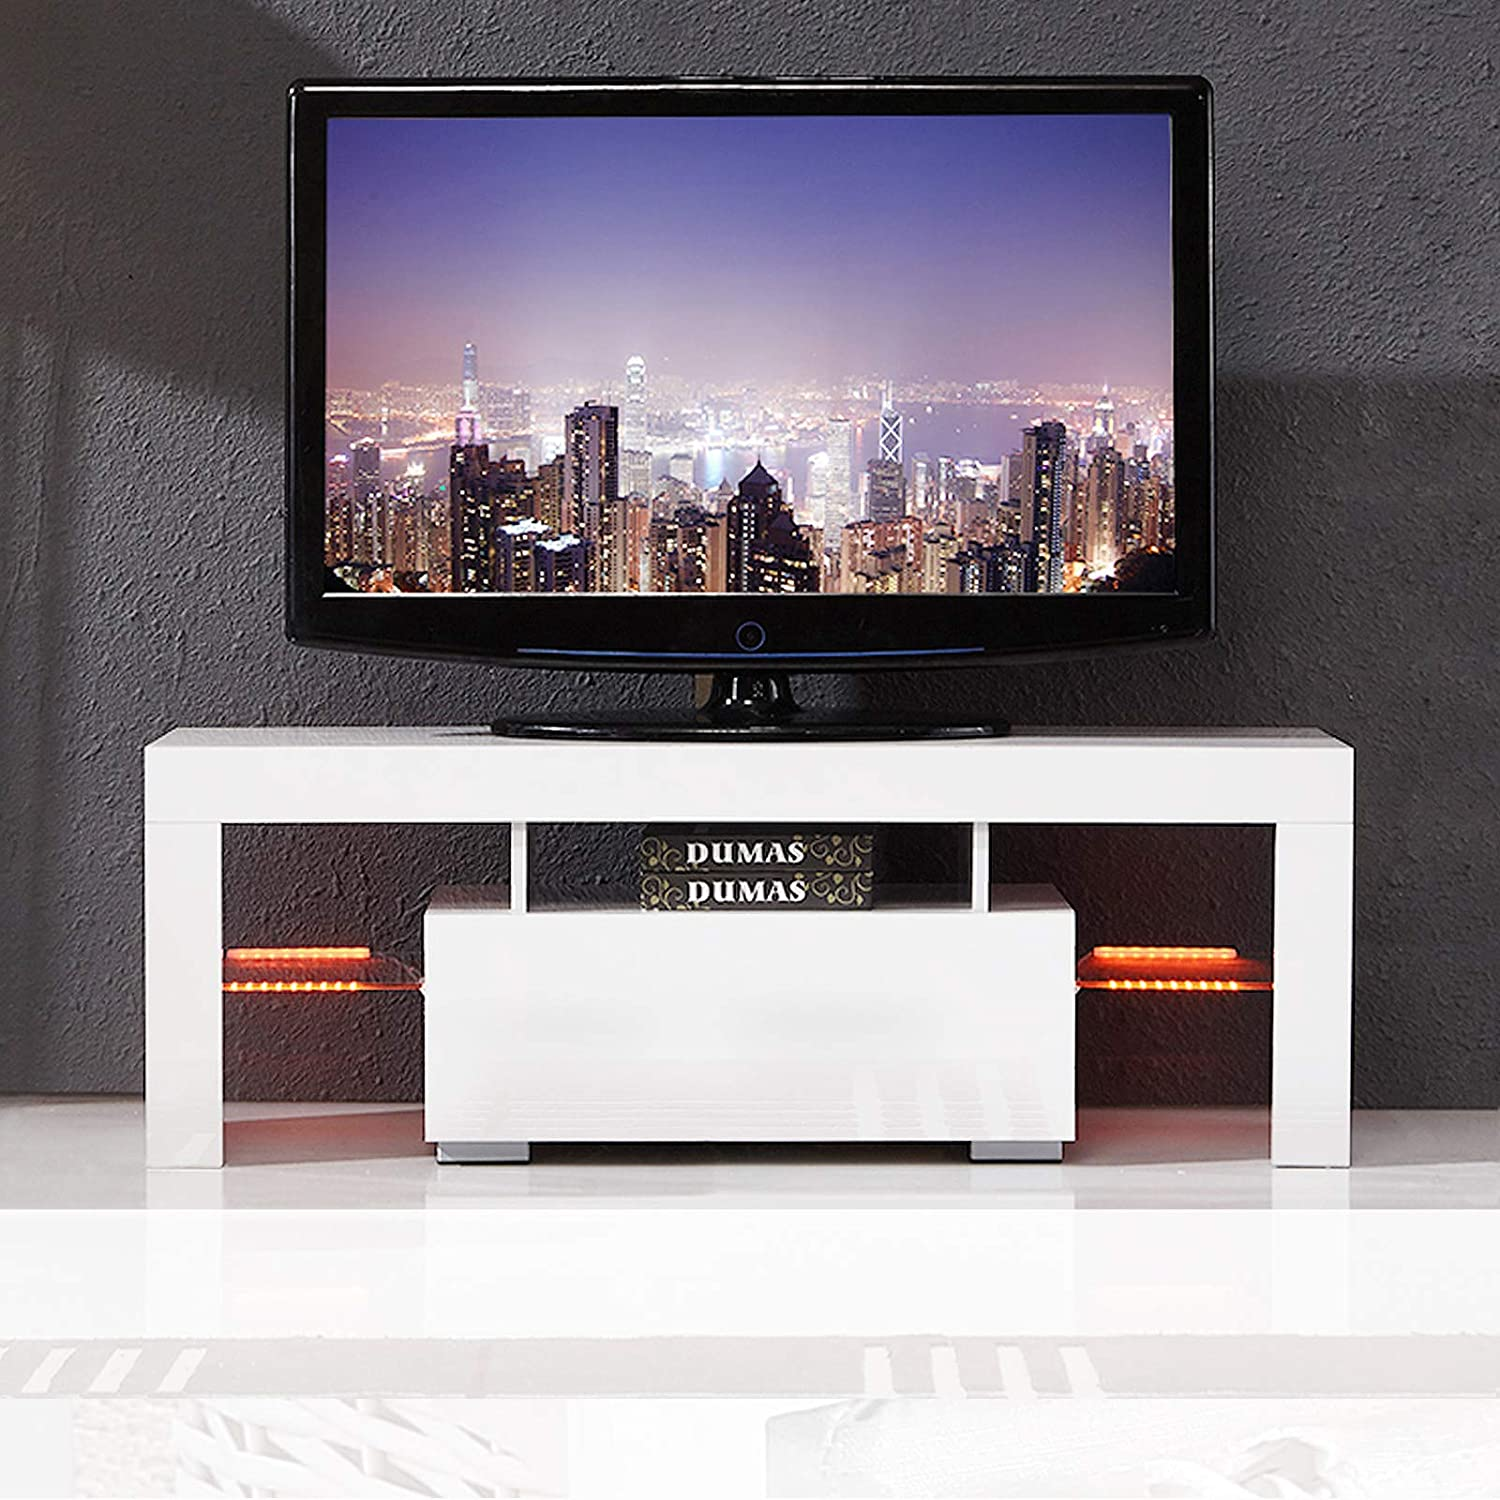 Amazon com mecor modern white tv stand 51 inch high gloss led tv stand console table for living room kitchen dining